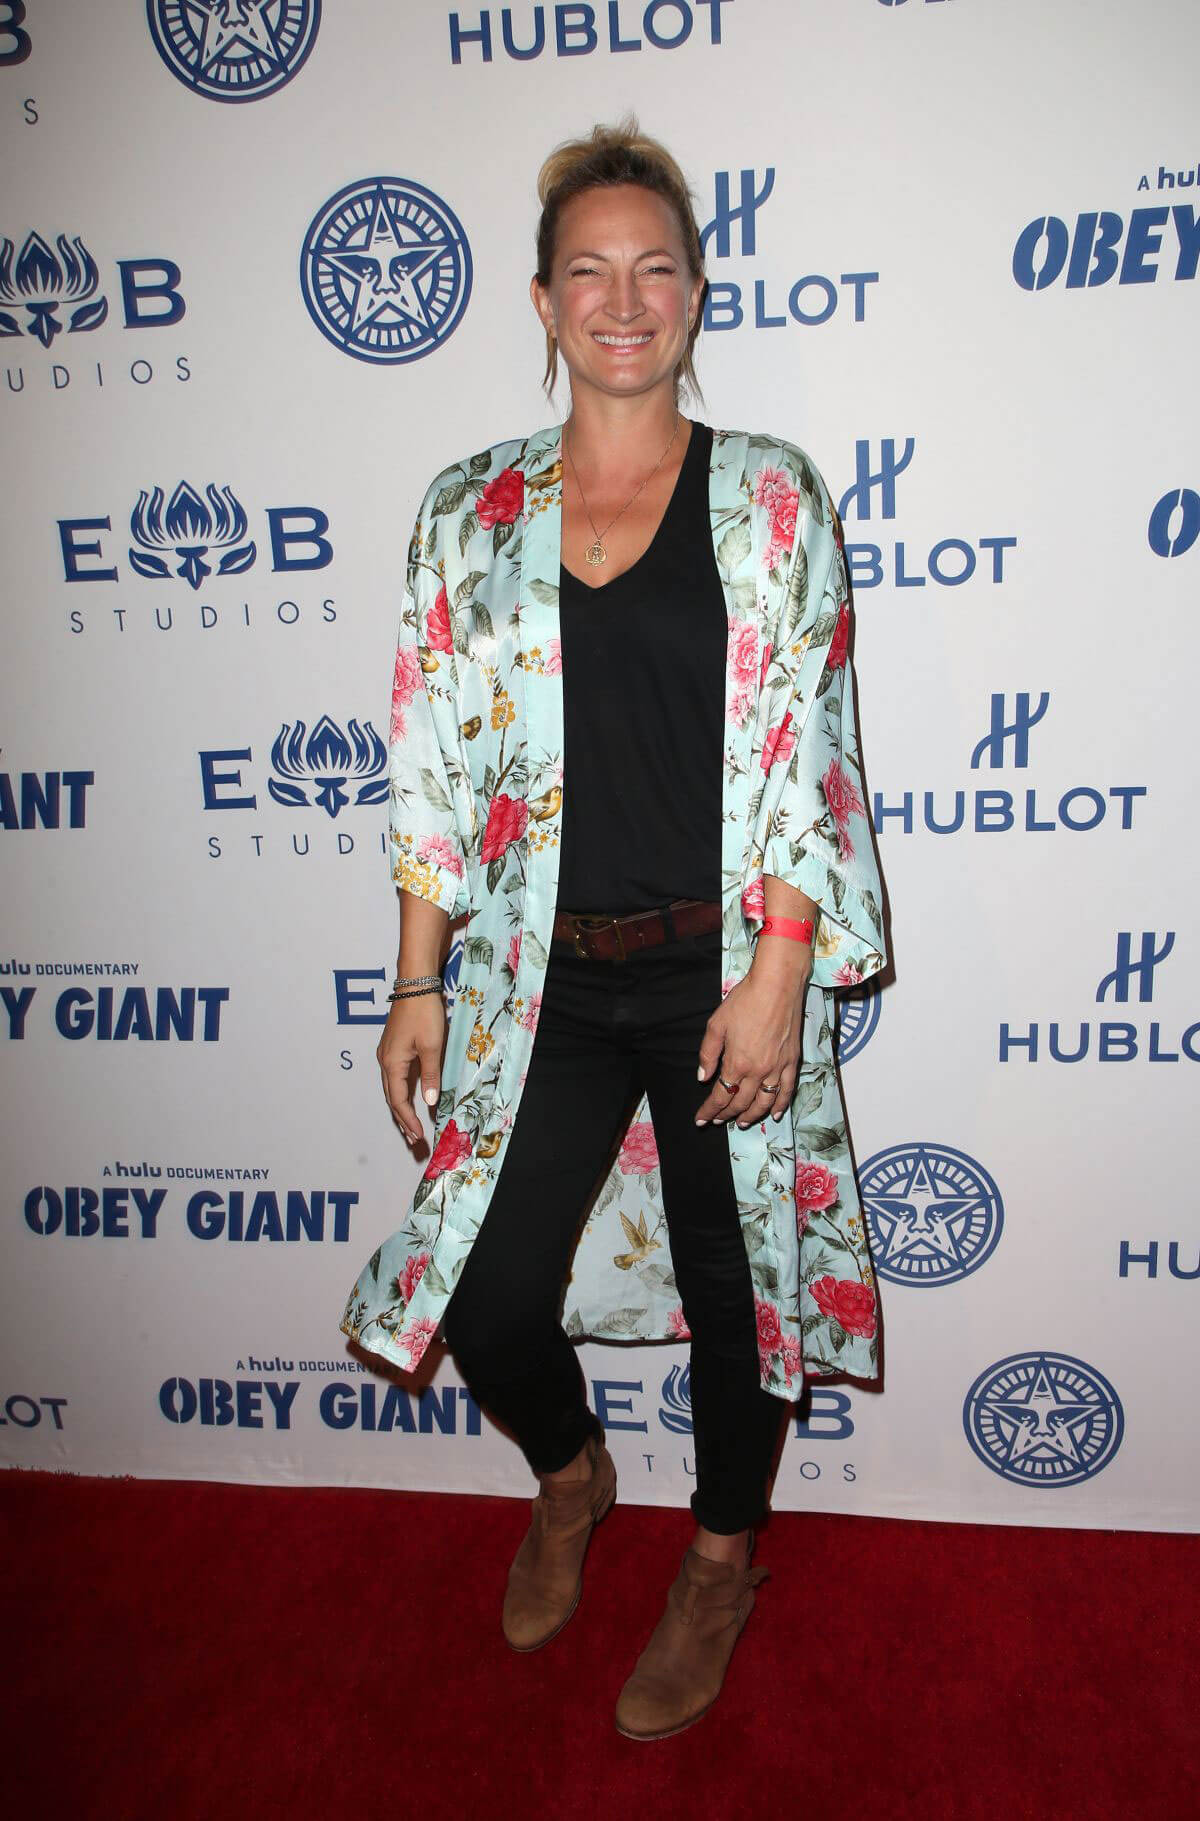 Zoe Bell Stills at Elysium Bandini Studios Presents Obey Giant in Los Angeles